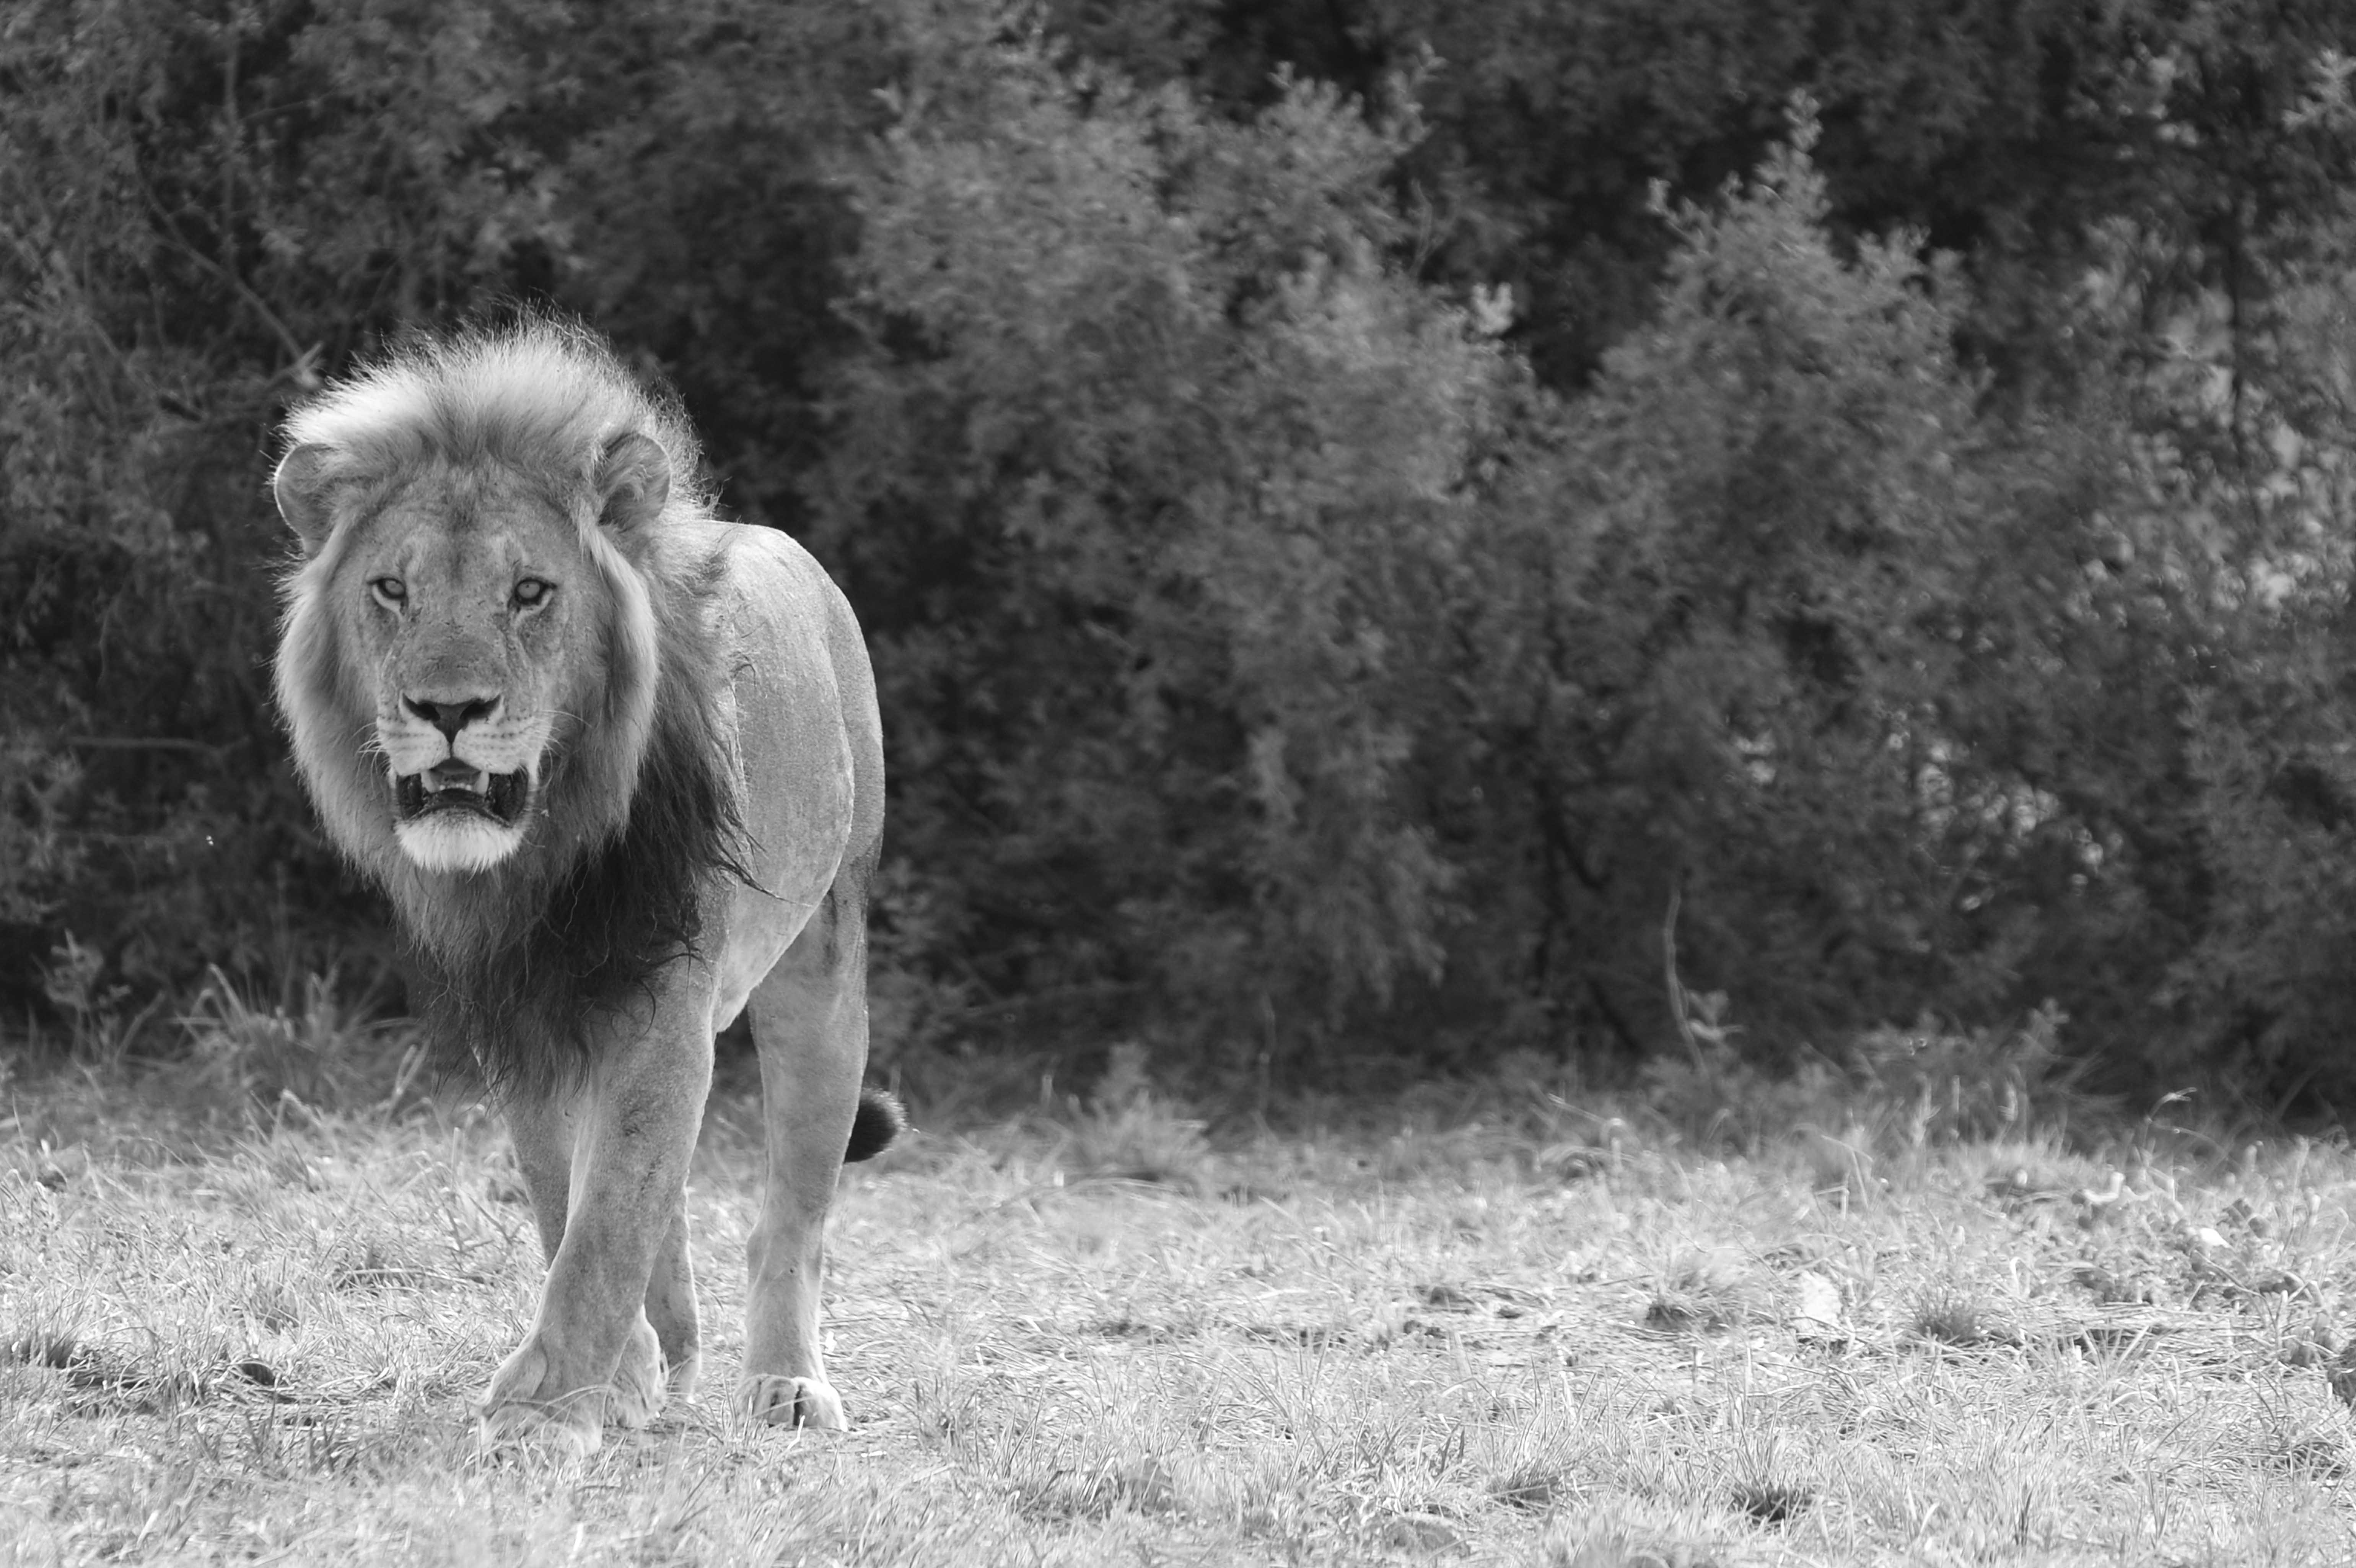 Lion (Panthera leo), ZA ©Johannes Ratermann